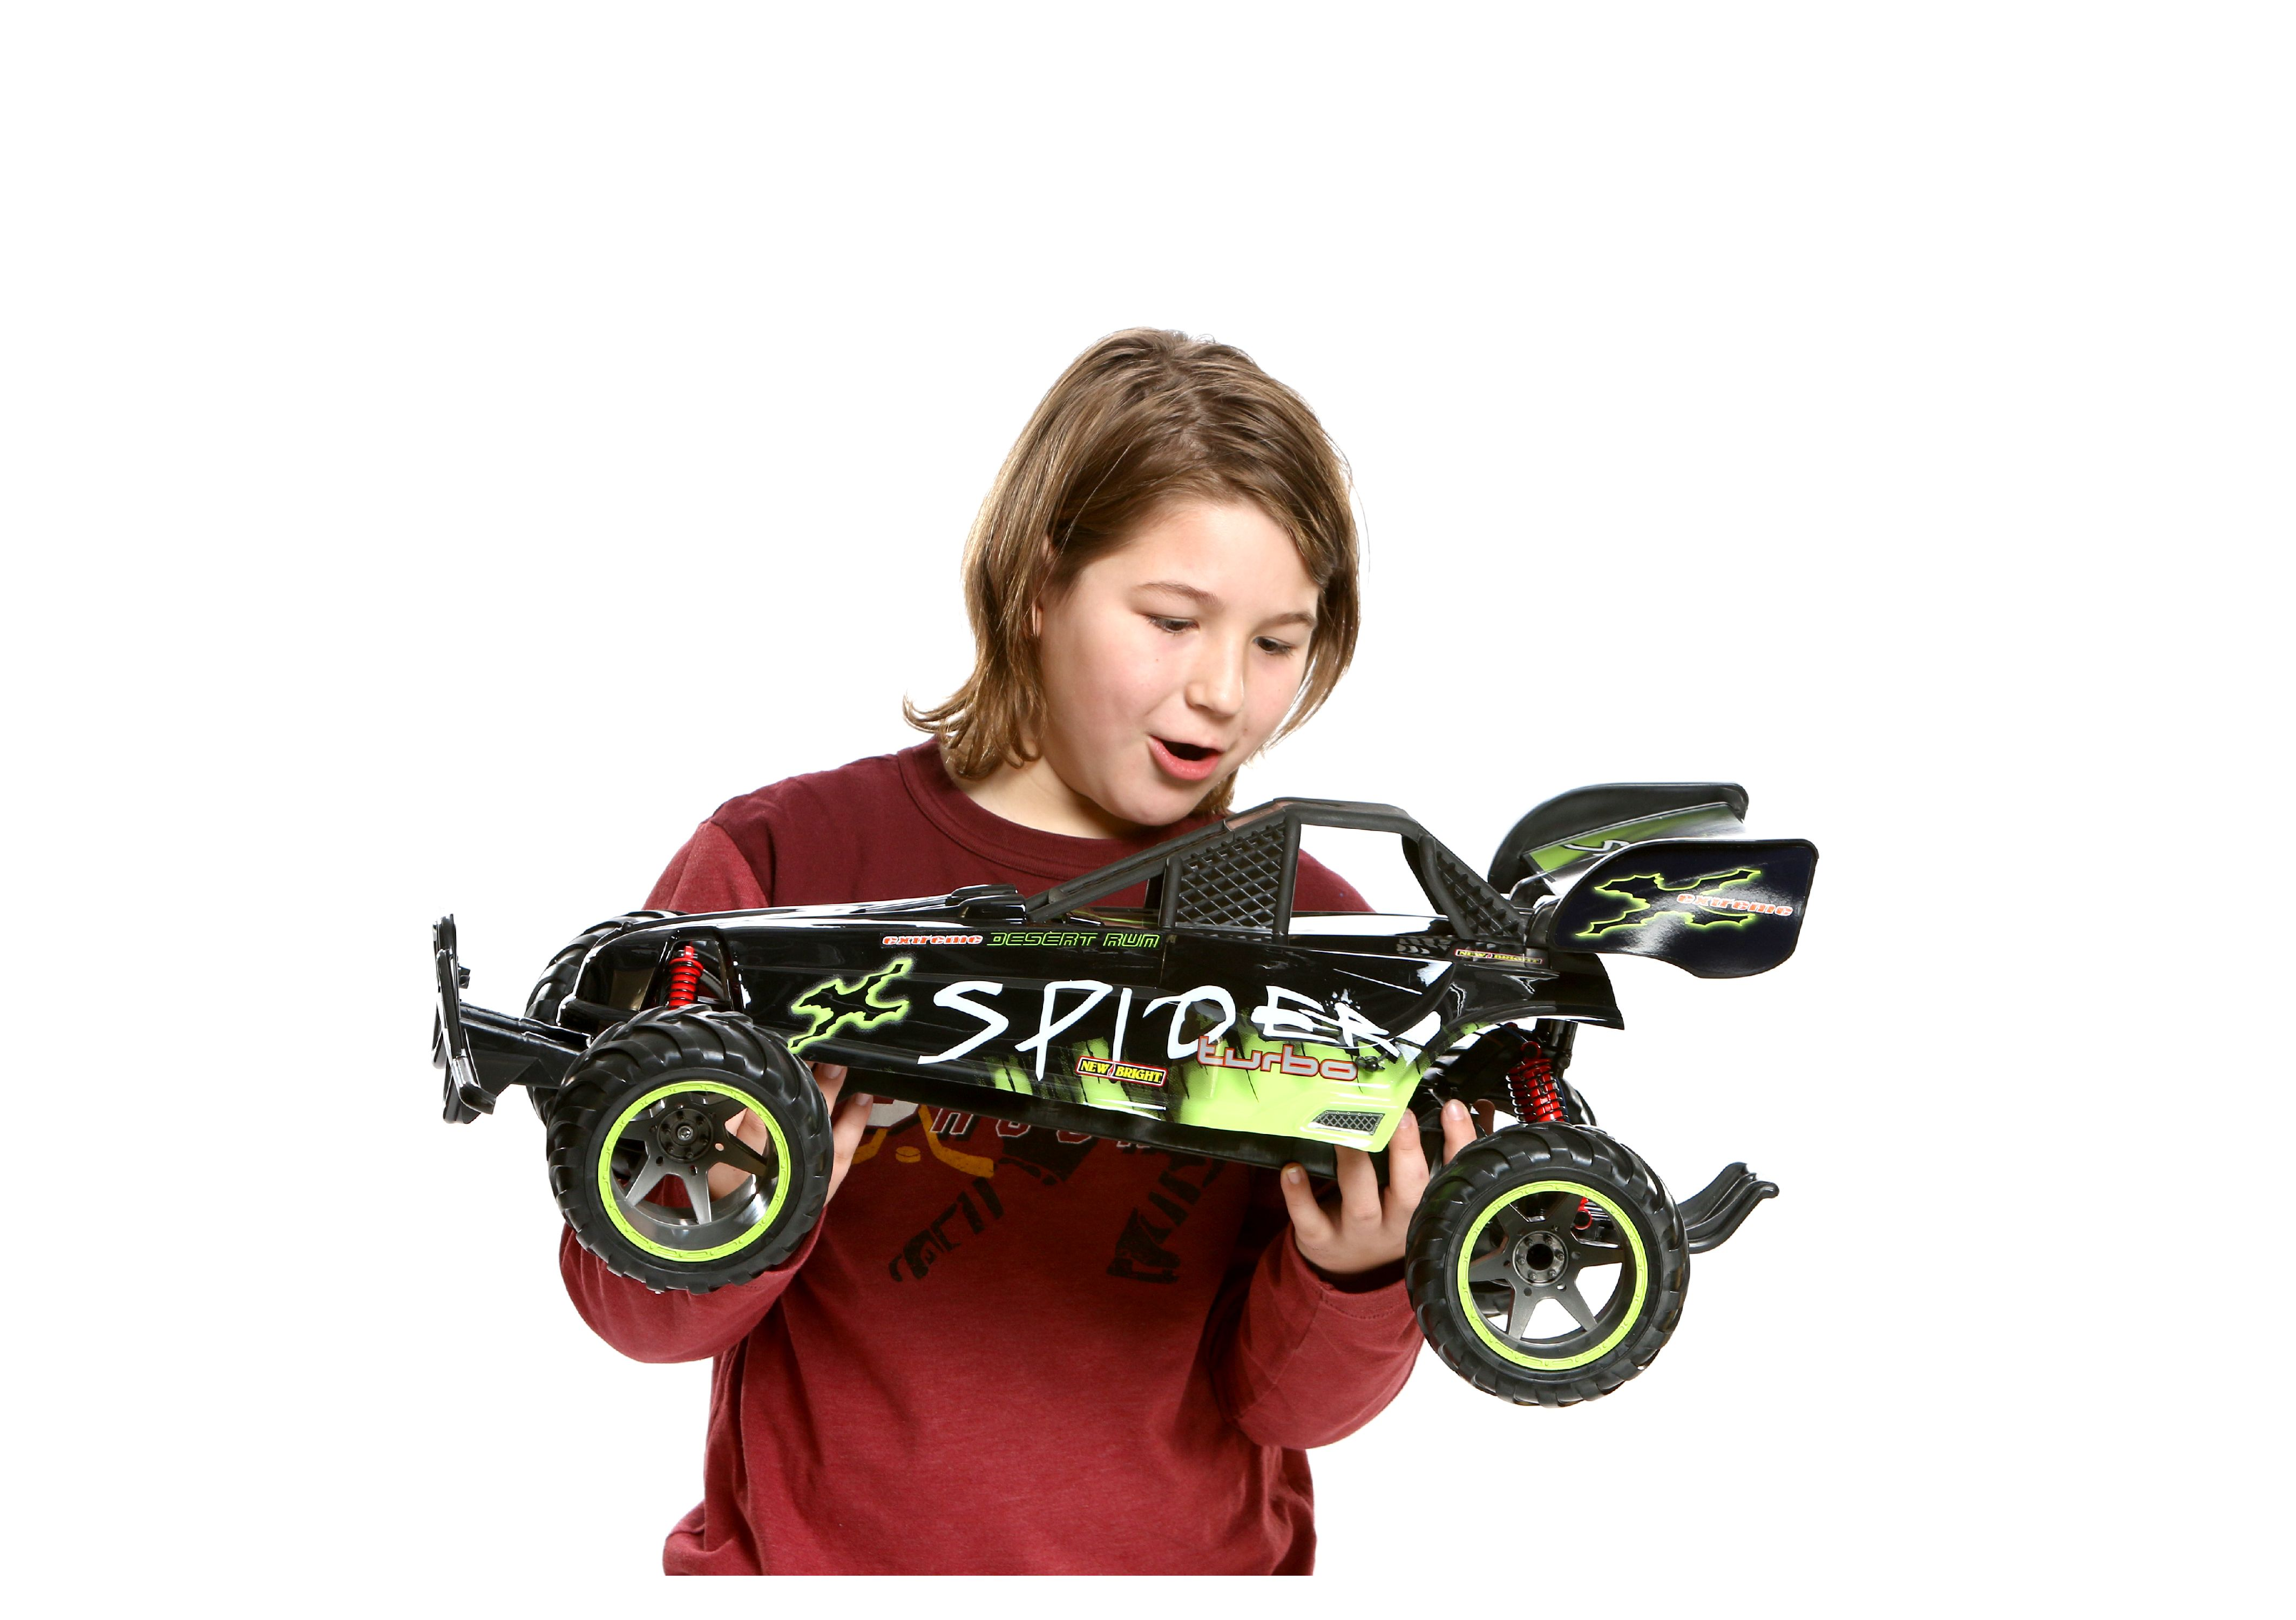 New Bright 1:6 Radio Control Spider Buggy by New Bright Industrial Co., Ltd.